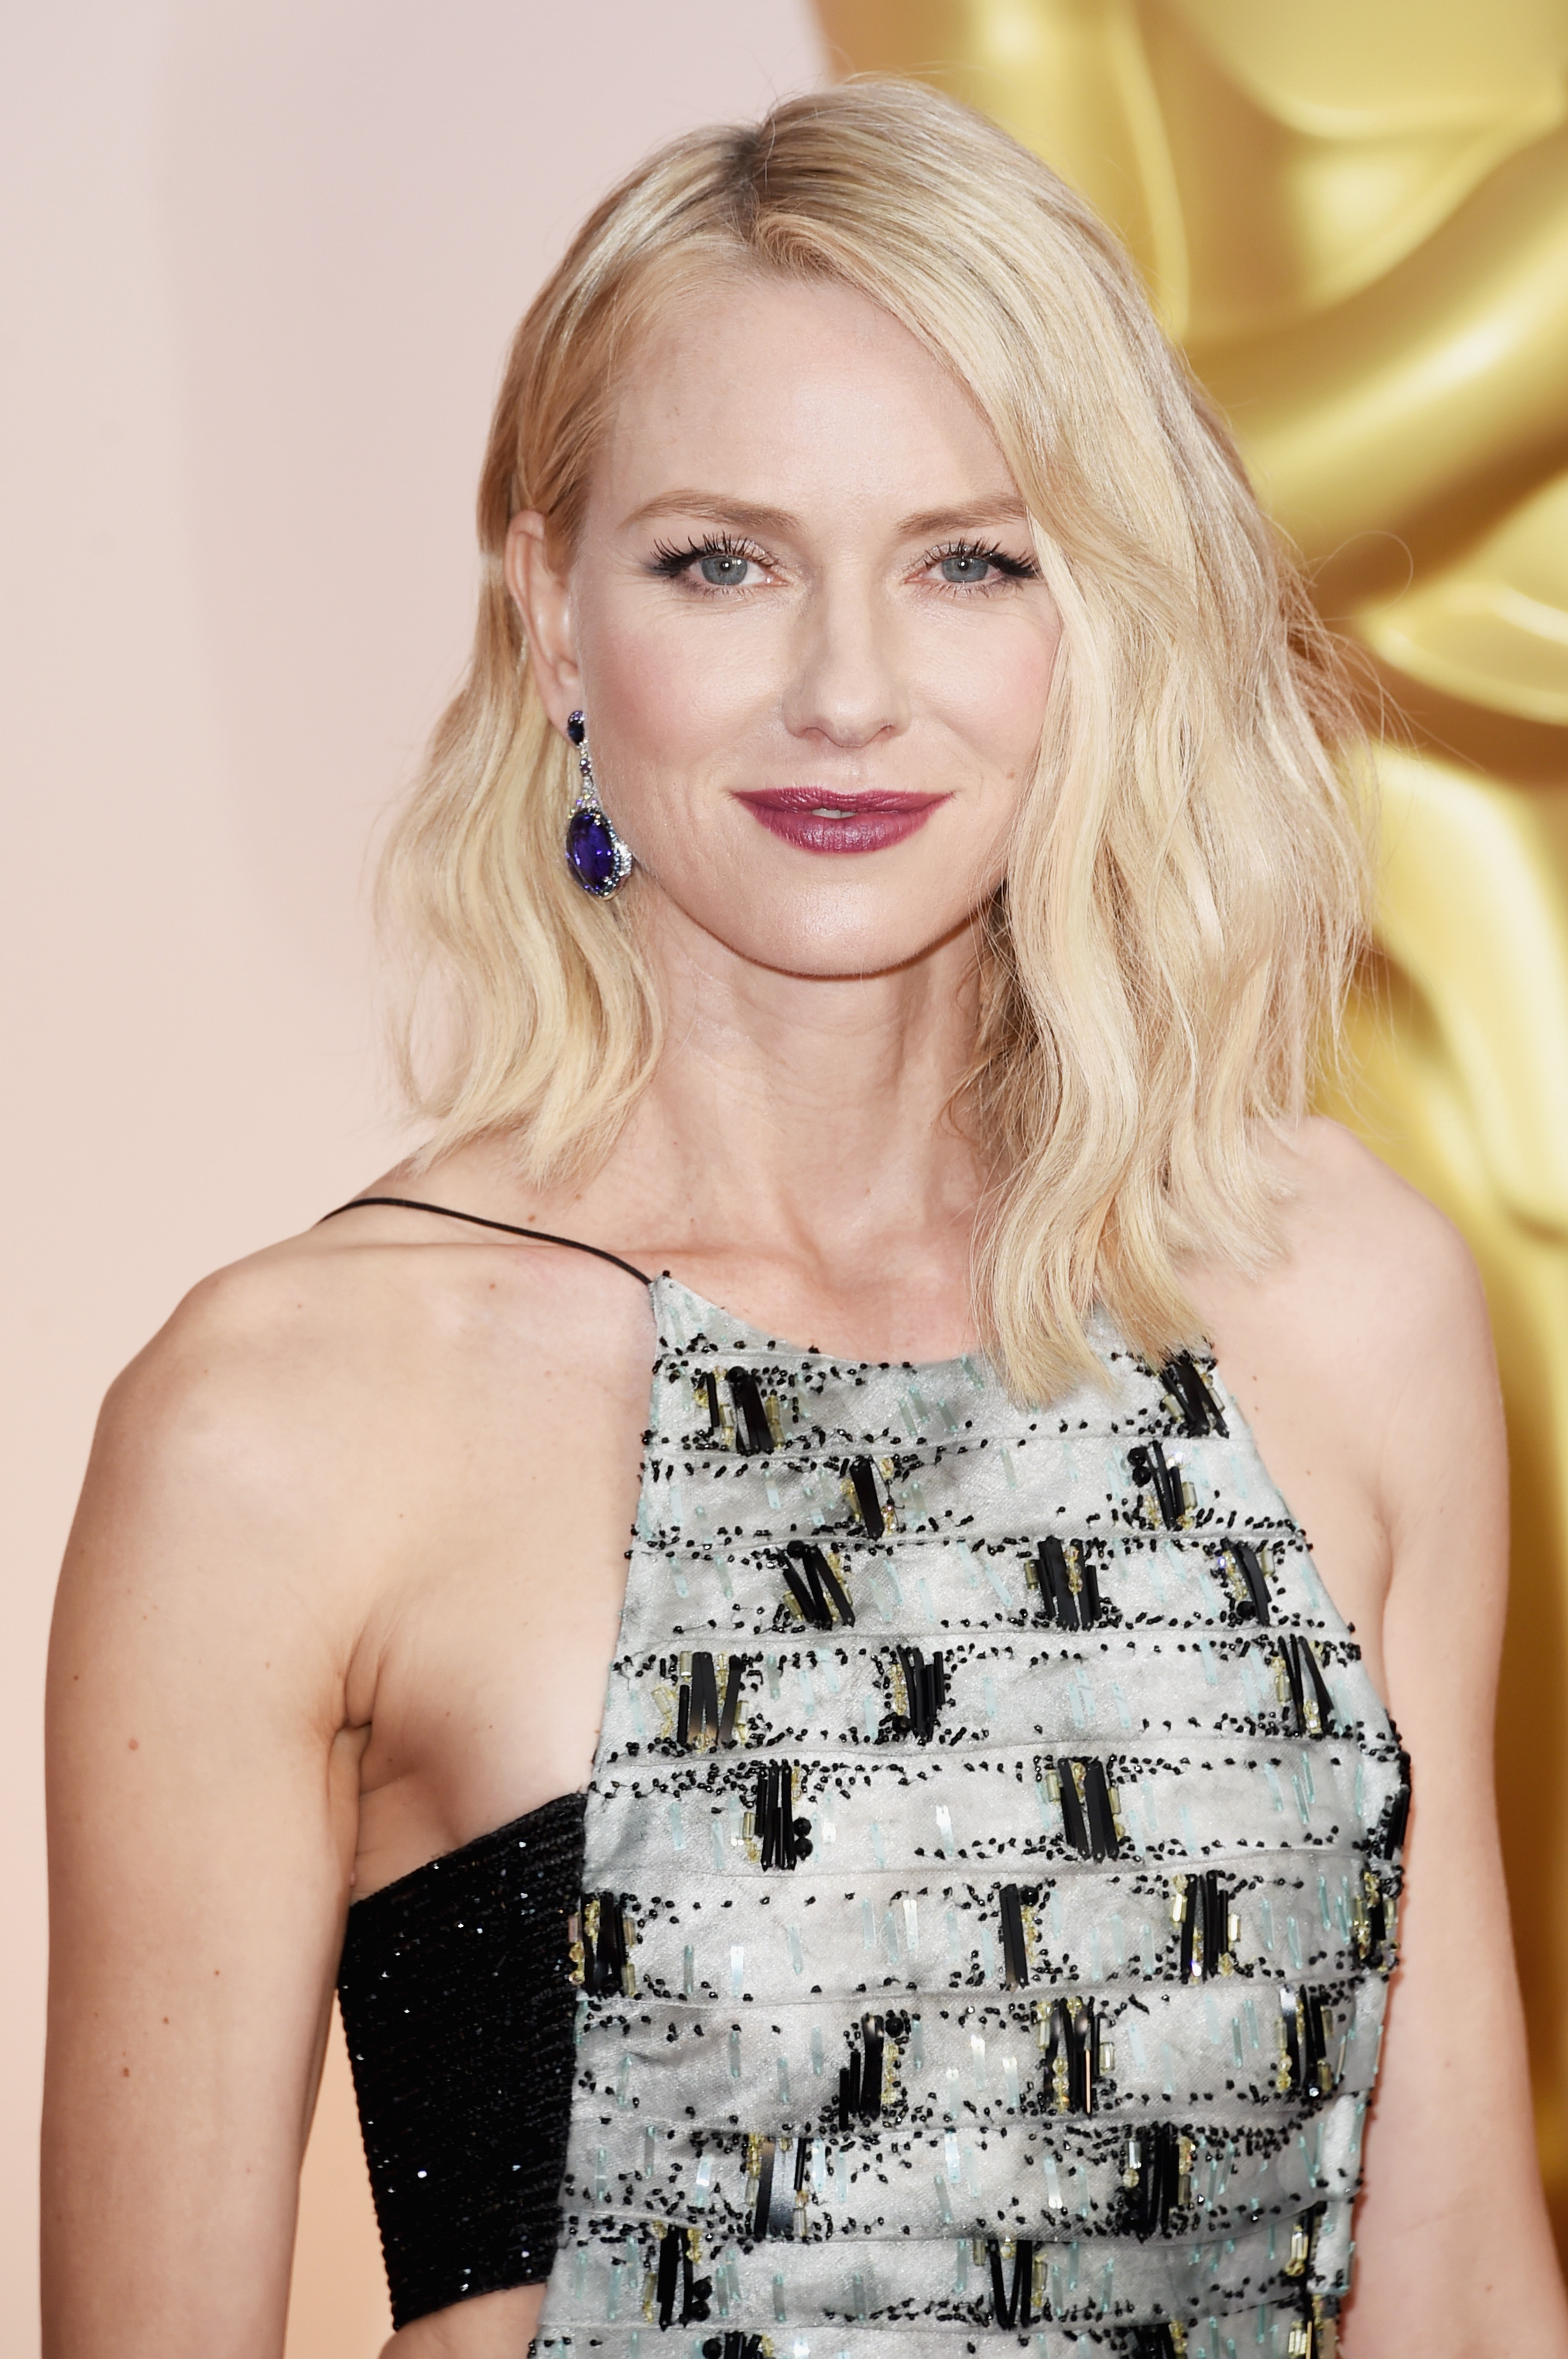 Naomi Watts Admits She Hasn't Gotten Plastic Surgery But ...